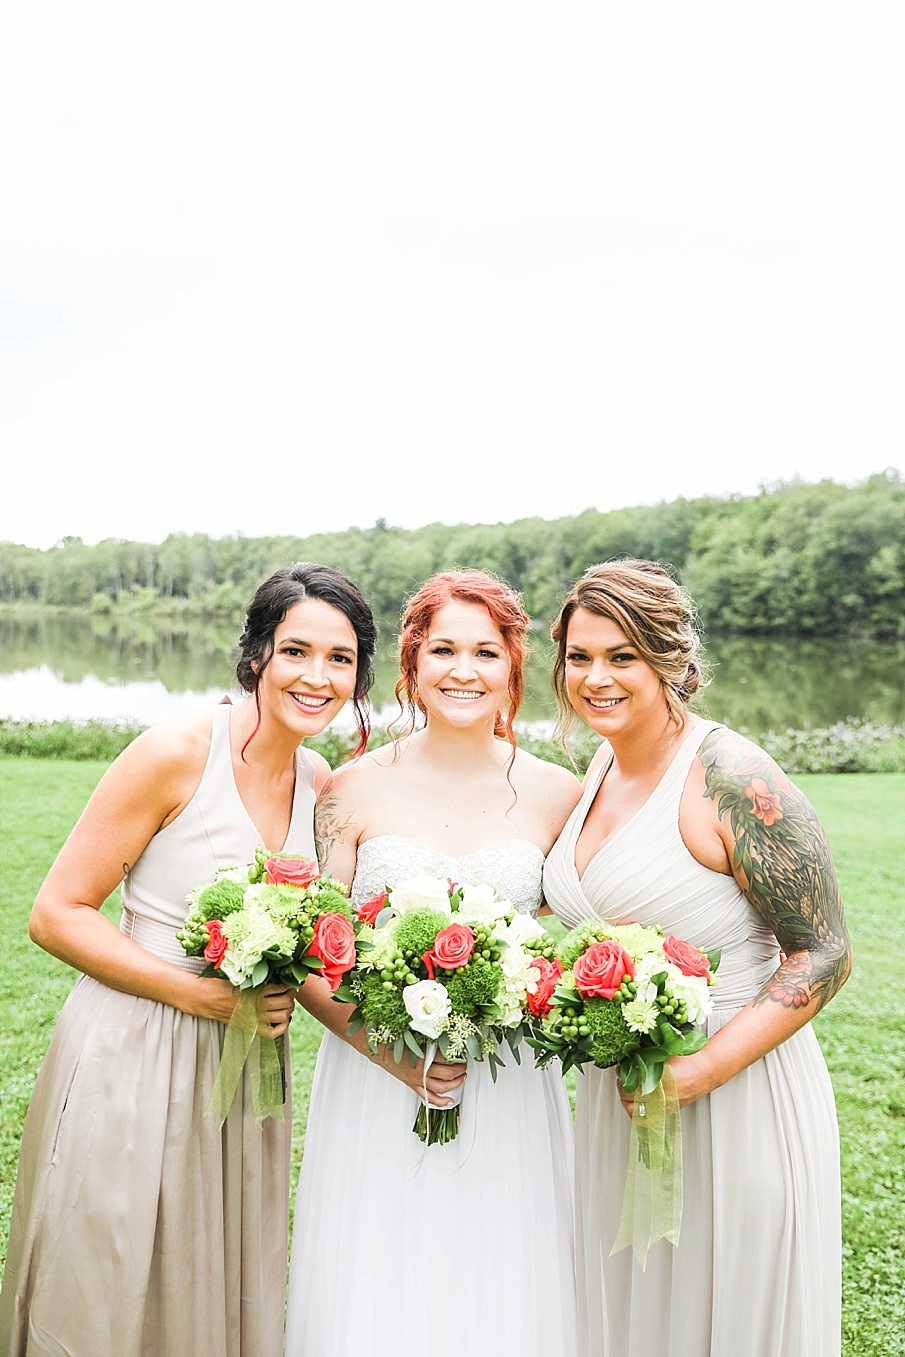 senecaryanco-pennsylvania-wedding-photographer-scranton-barnatglisteningpond_0793.jpg